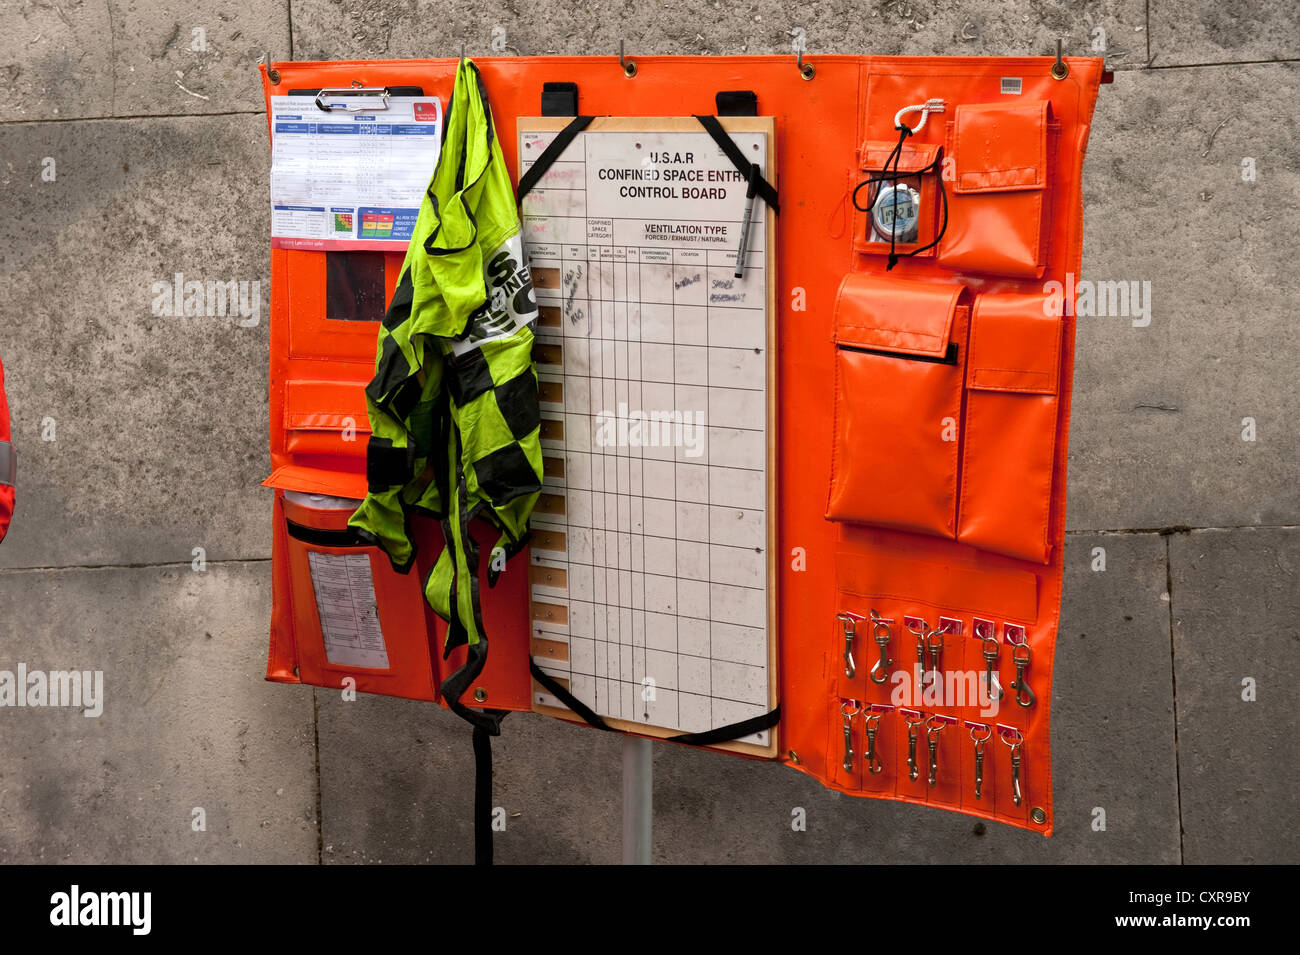 USAR Confined Space Entry Control Board Fire & Rescue - Stock Image